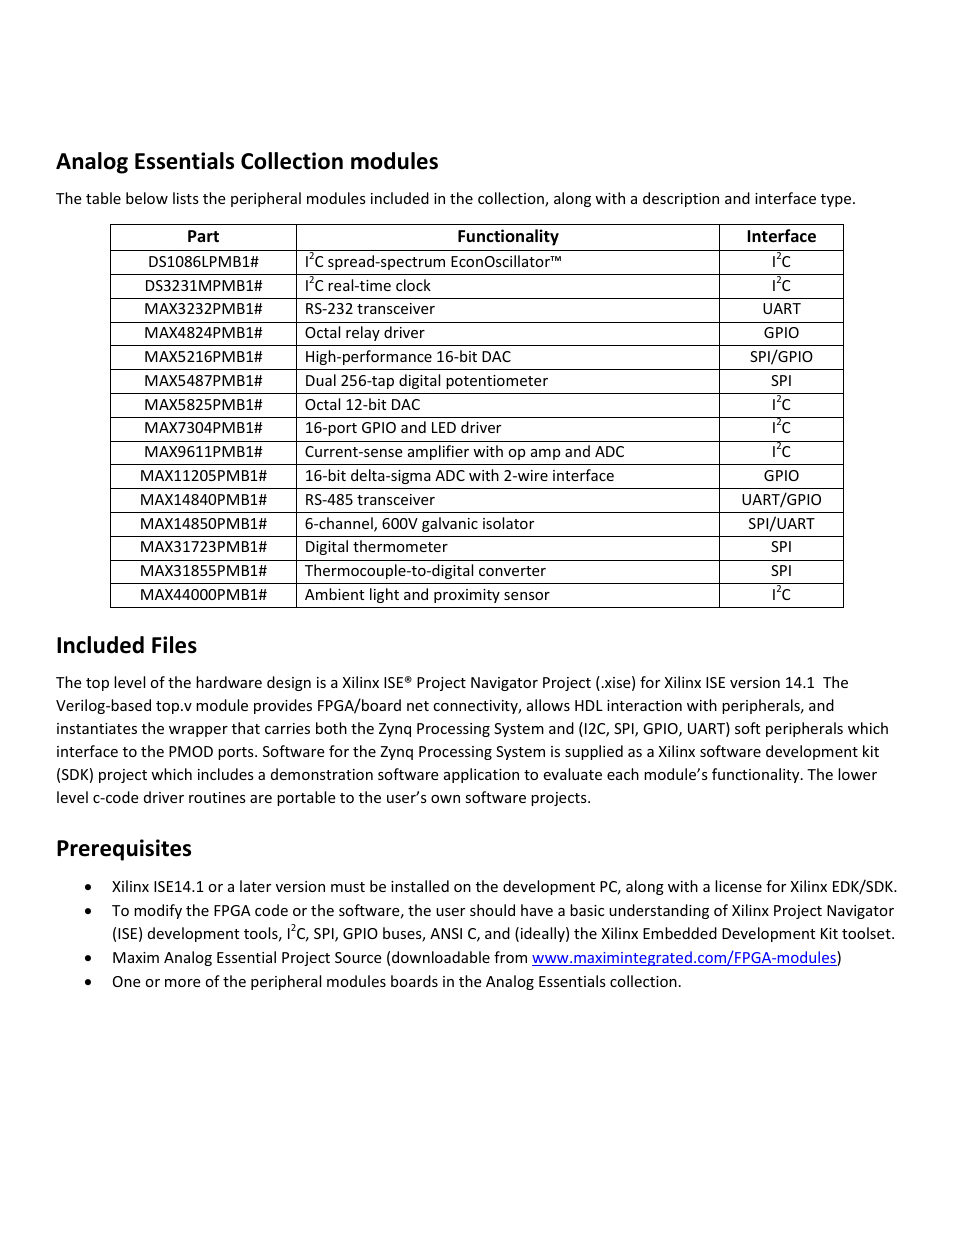 Analog Essentials Collection Modules Included Files Prerequisites Thermocouple To Digital Converter Maxim Integrated Getting Started Guide For Zedboard User Manual